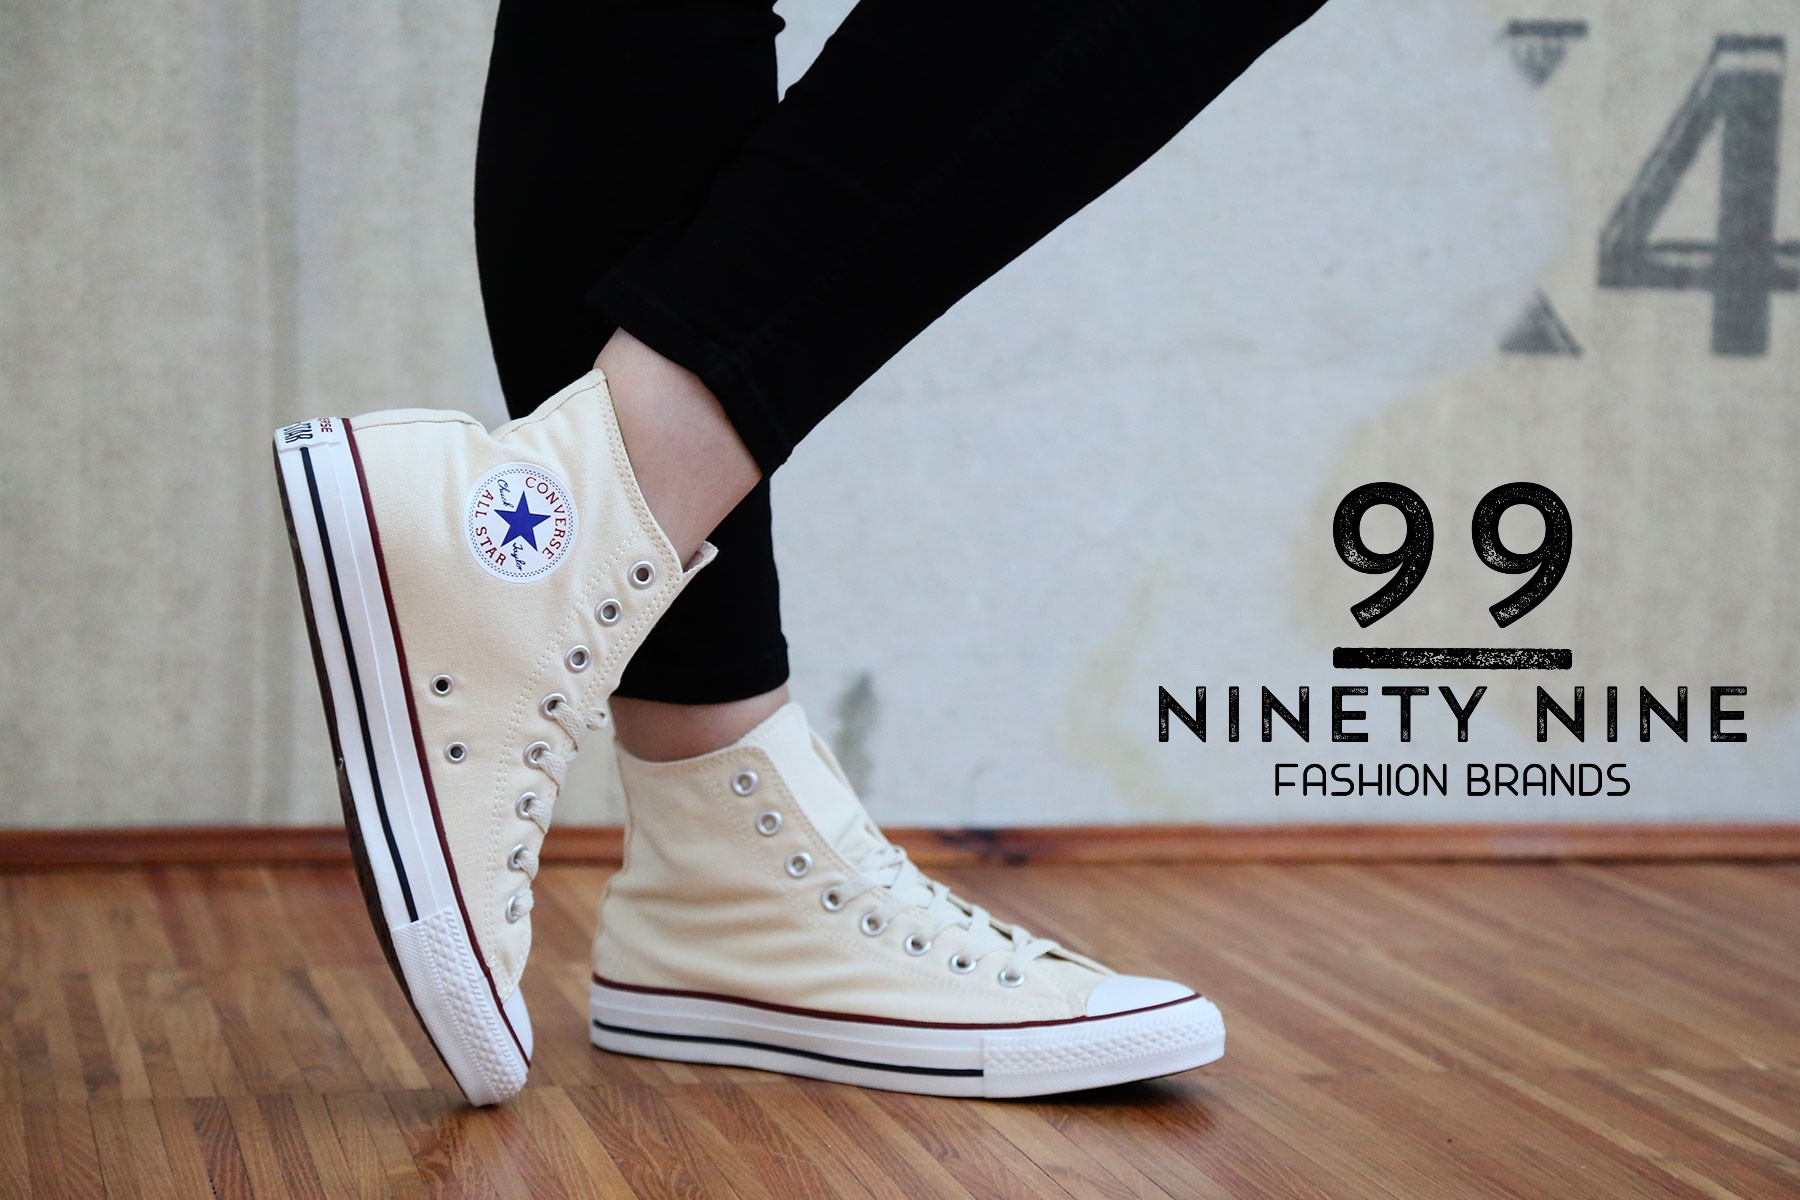 Converse All Star on sale at 99 Fashion Brands